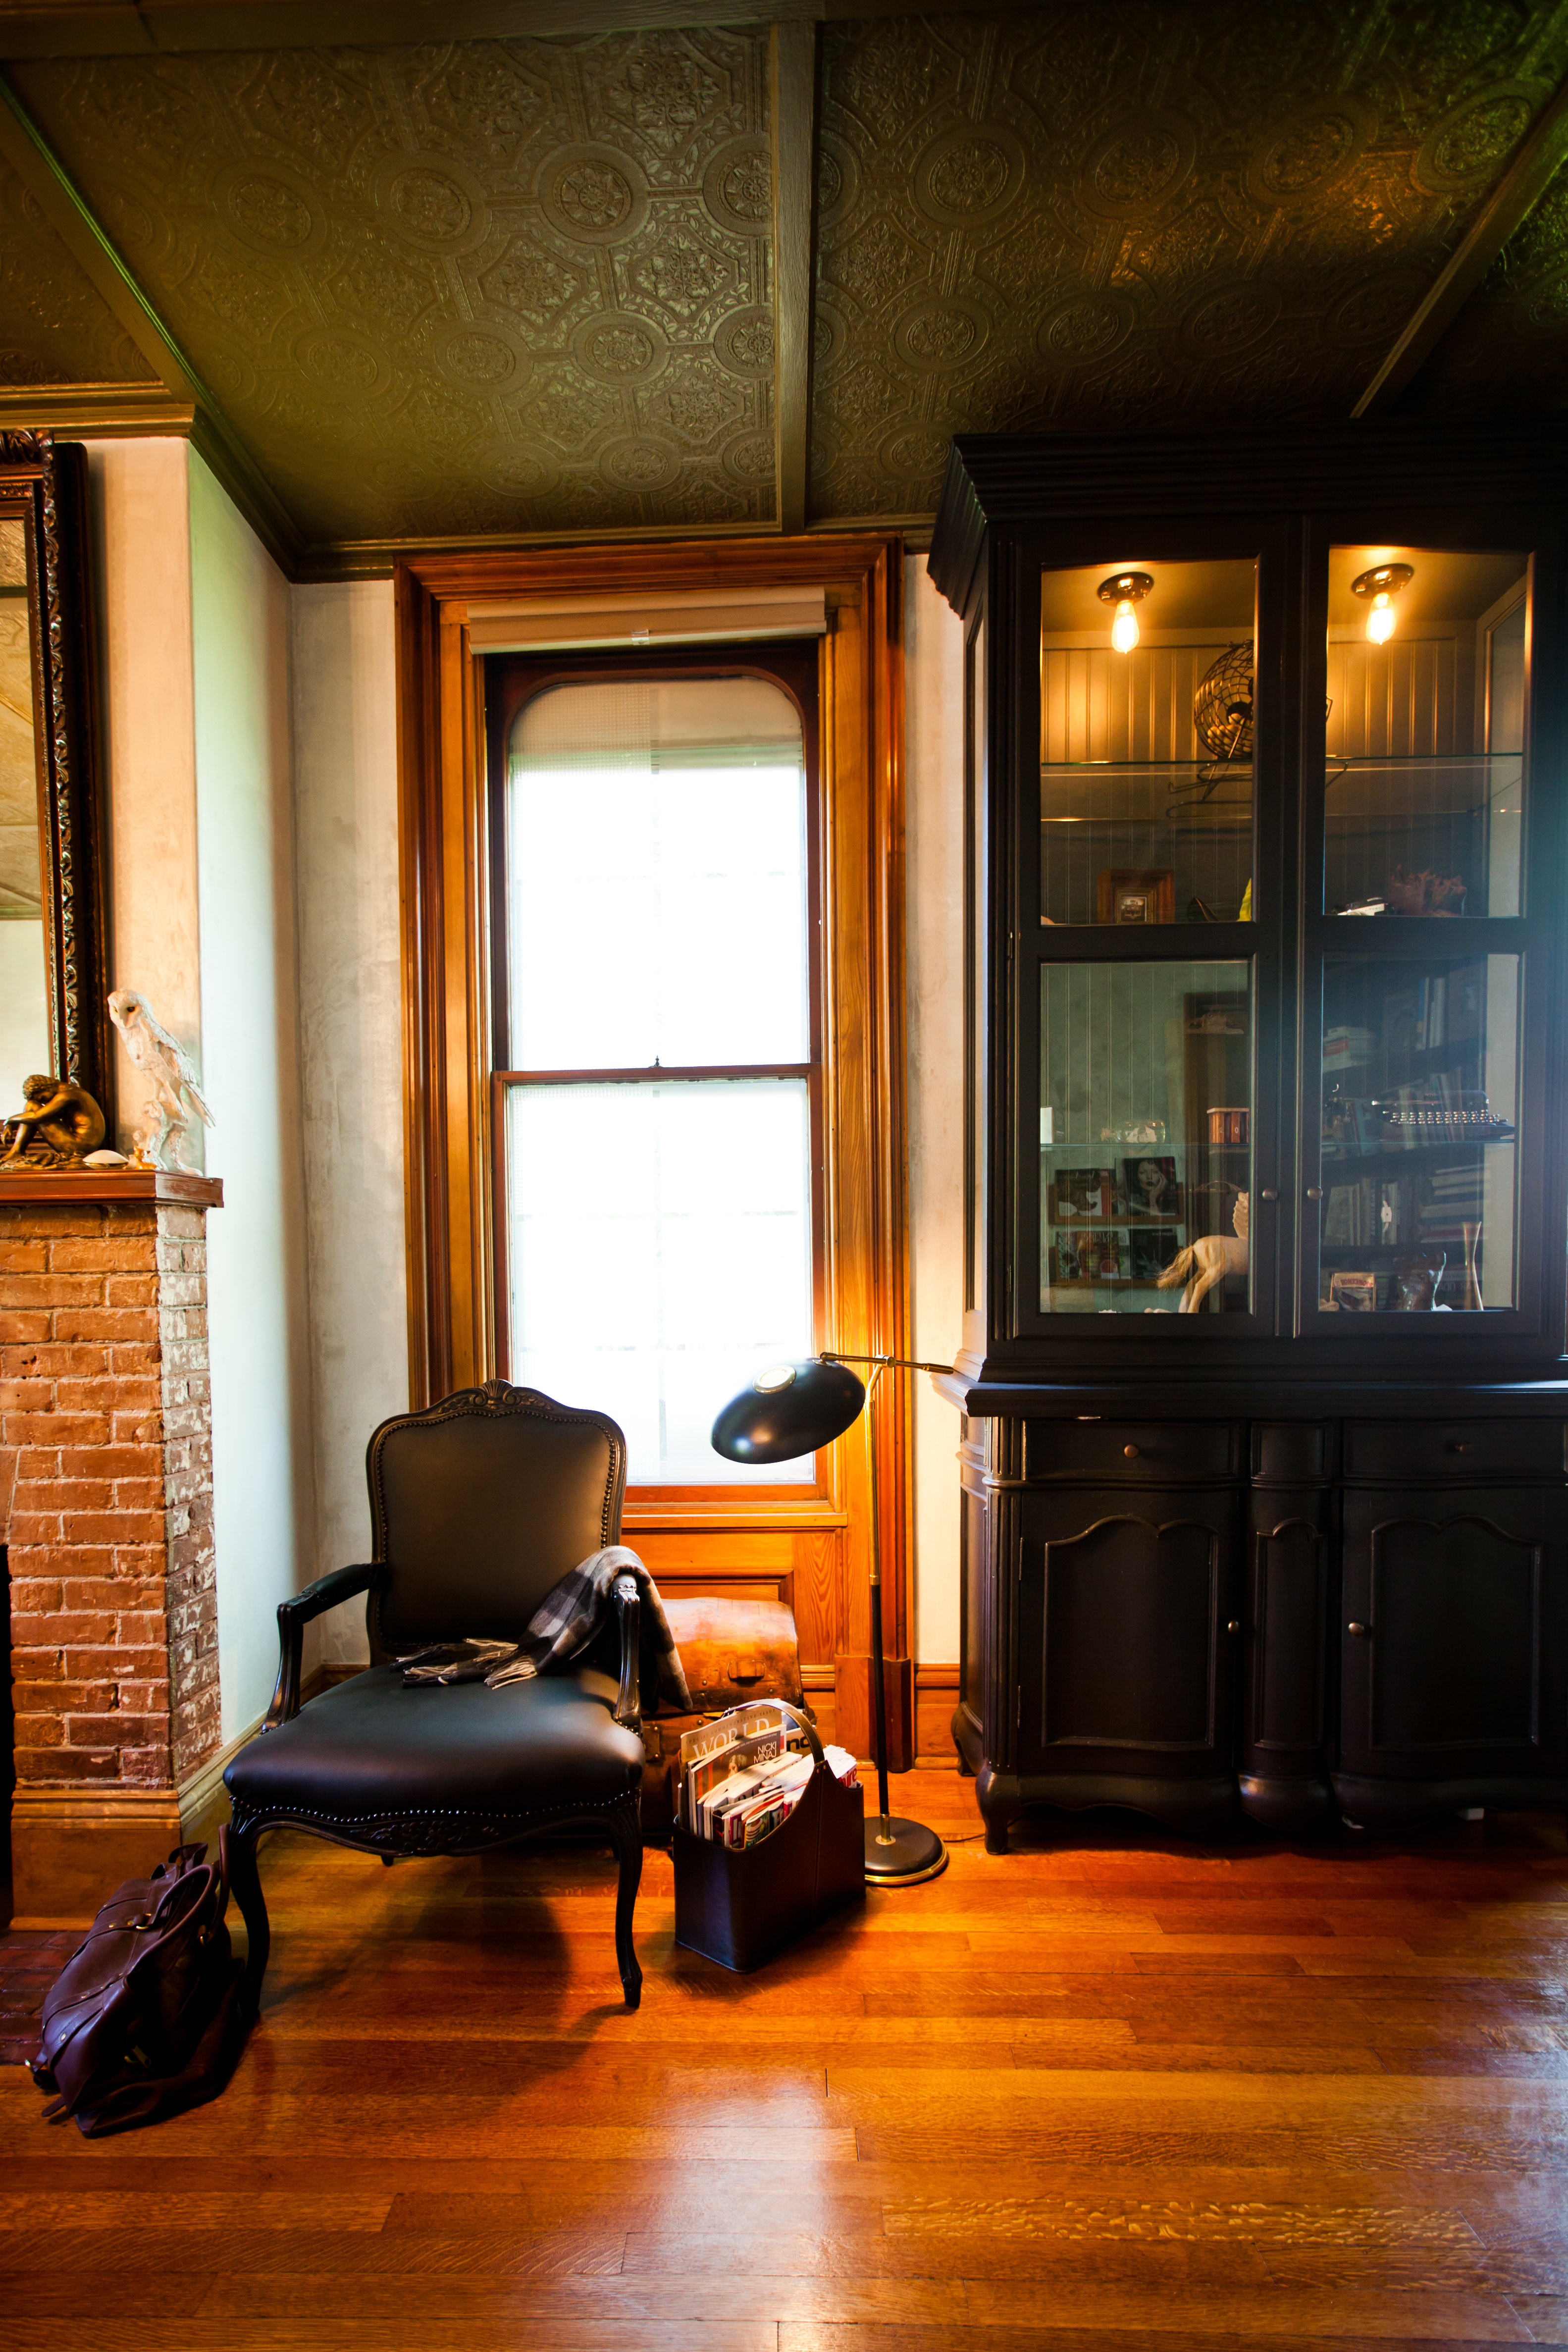 Room 903 burlington made inn vermont an urban chic boutique bed and breakfast